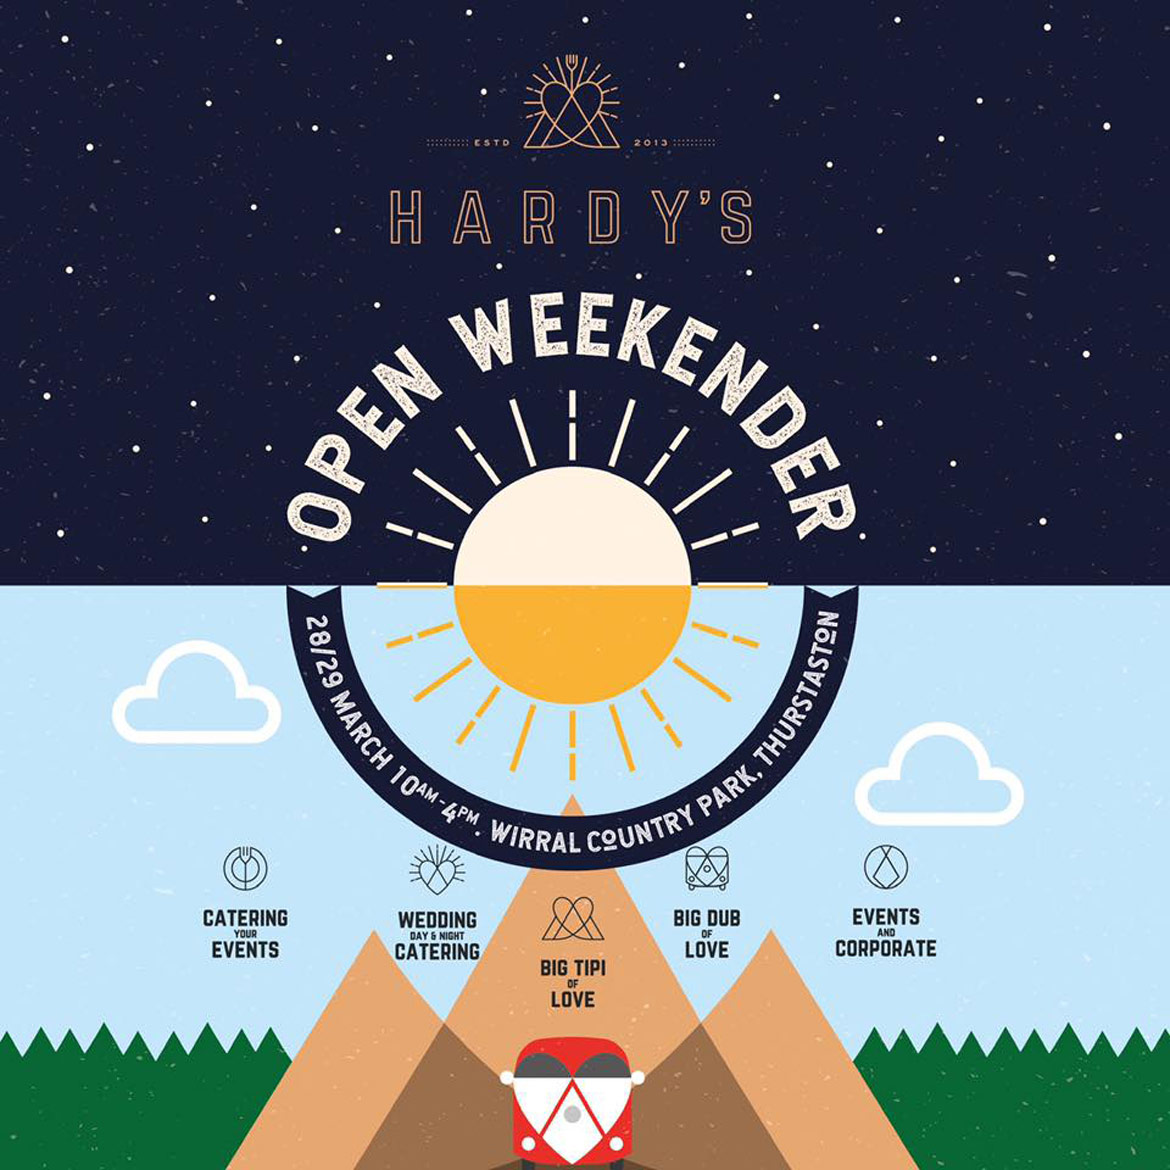 Wirral's Coolest Wedding Weekend Is BACK!